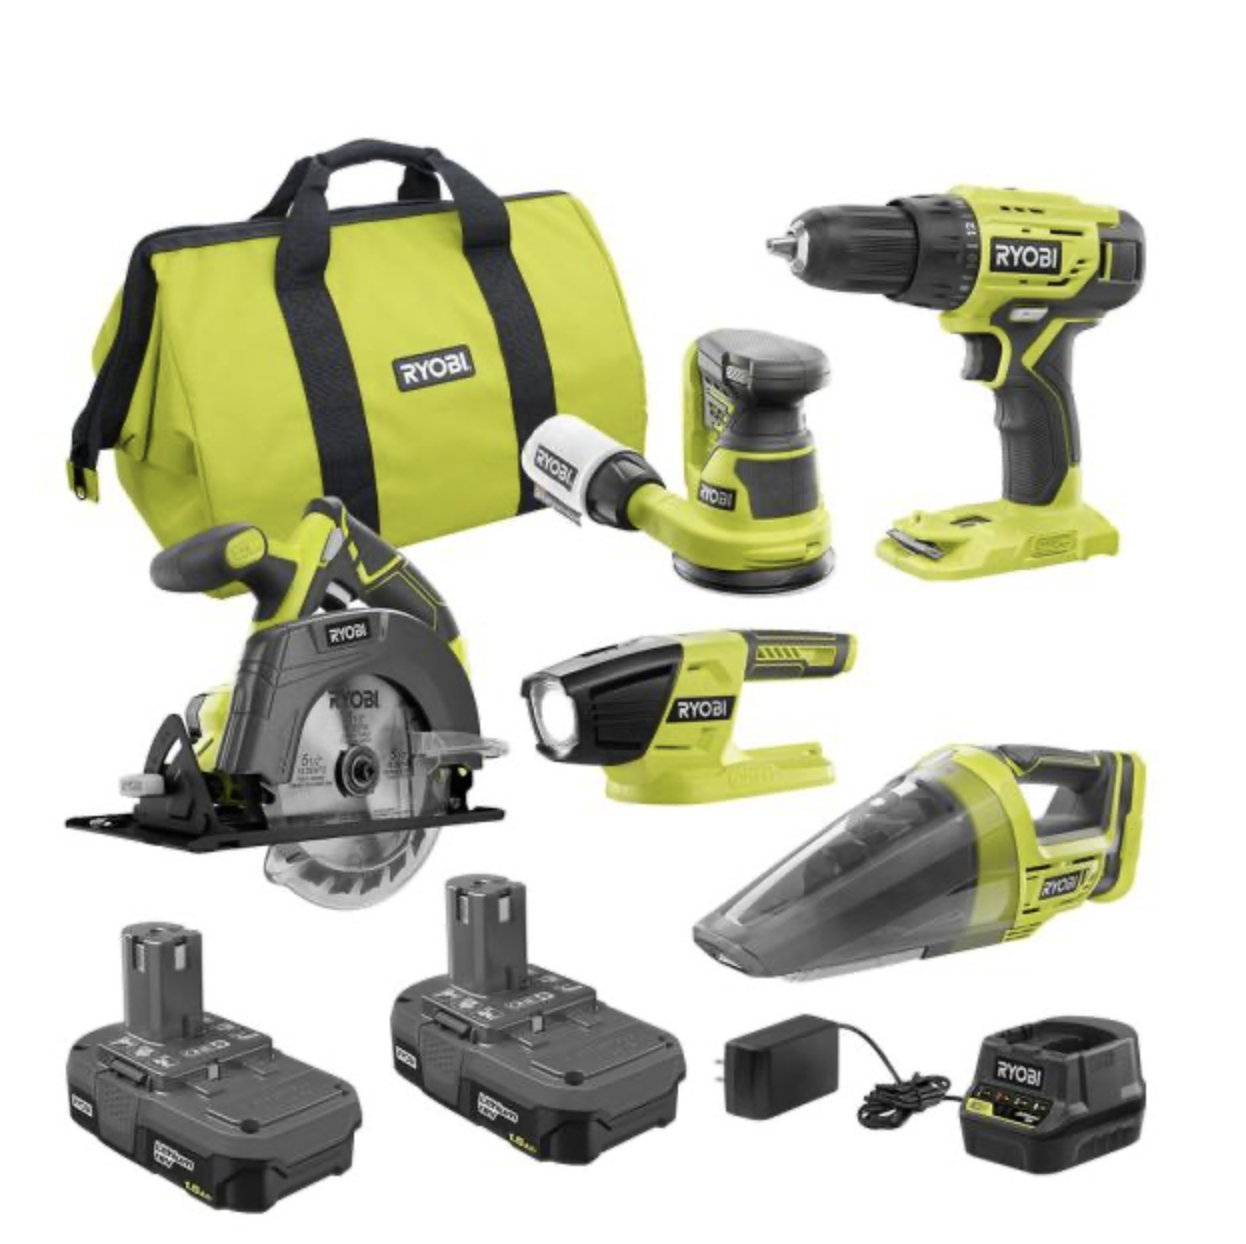 Home Depot: Select Power and Hand Tools for sale